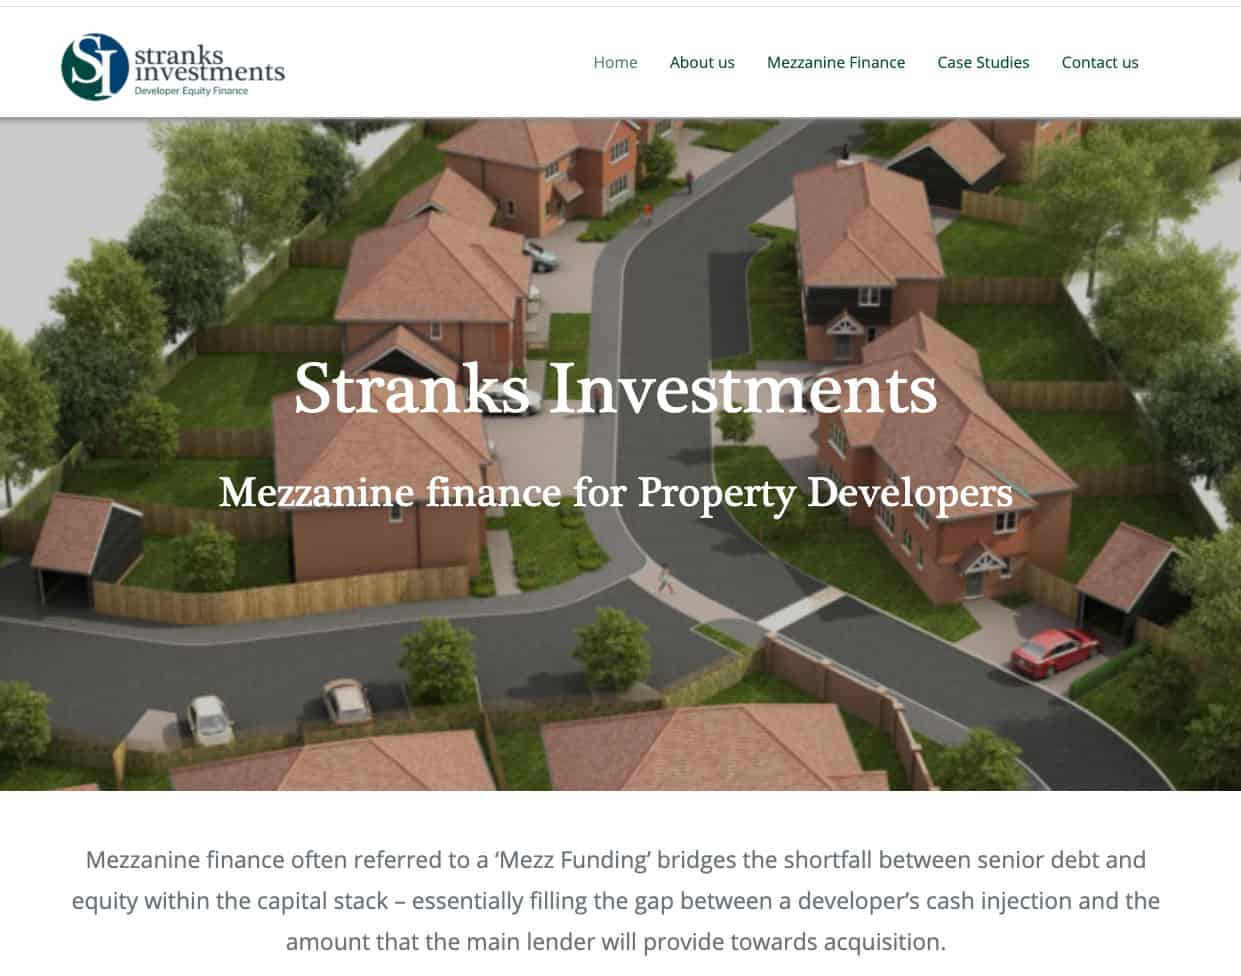 Stranks Investments homepage